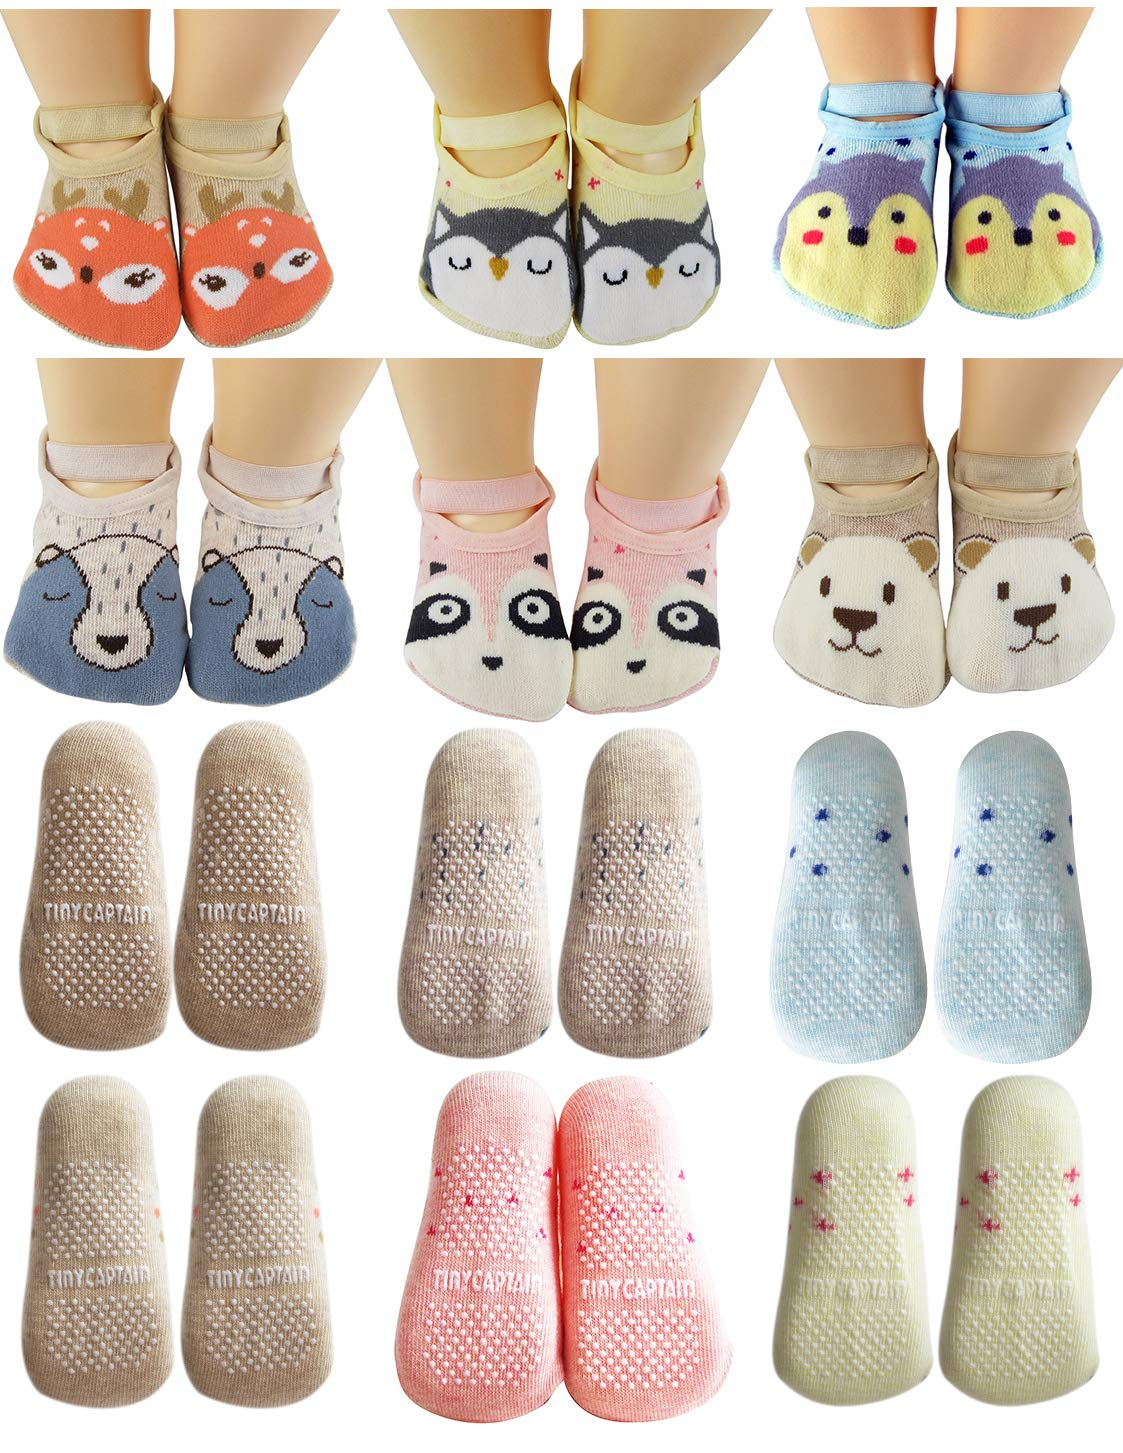 Baby Toddler Girls Grip Socks Anti Slip 1 Year Old Gift Cartoon Animal Best Non Skid Cotton Sock From Tiny Captain (Pink, Blue, Grey, Tan) by Tiny Captain